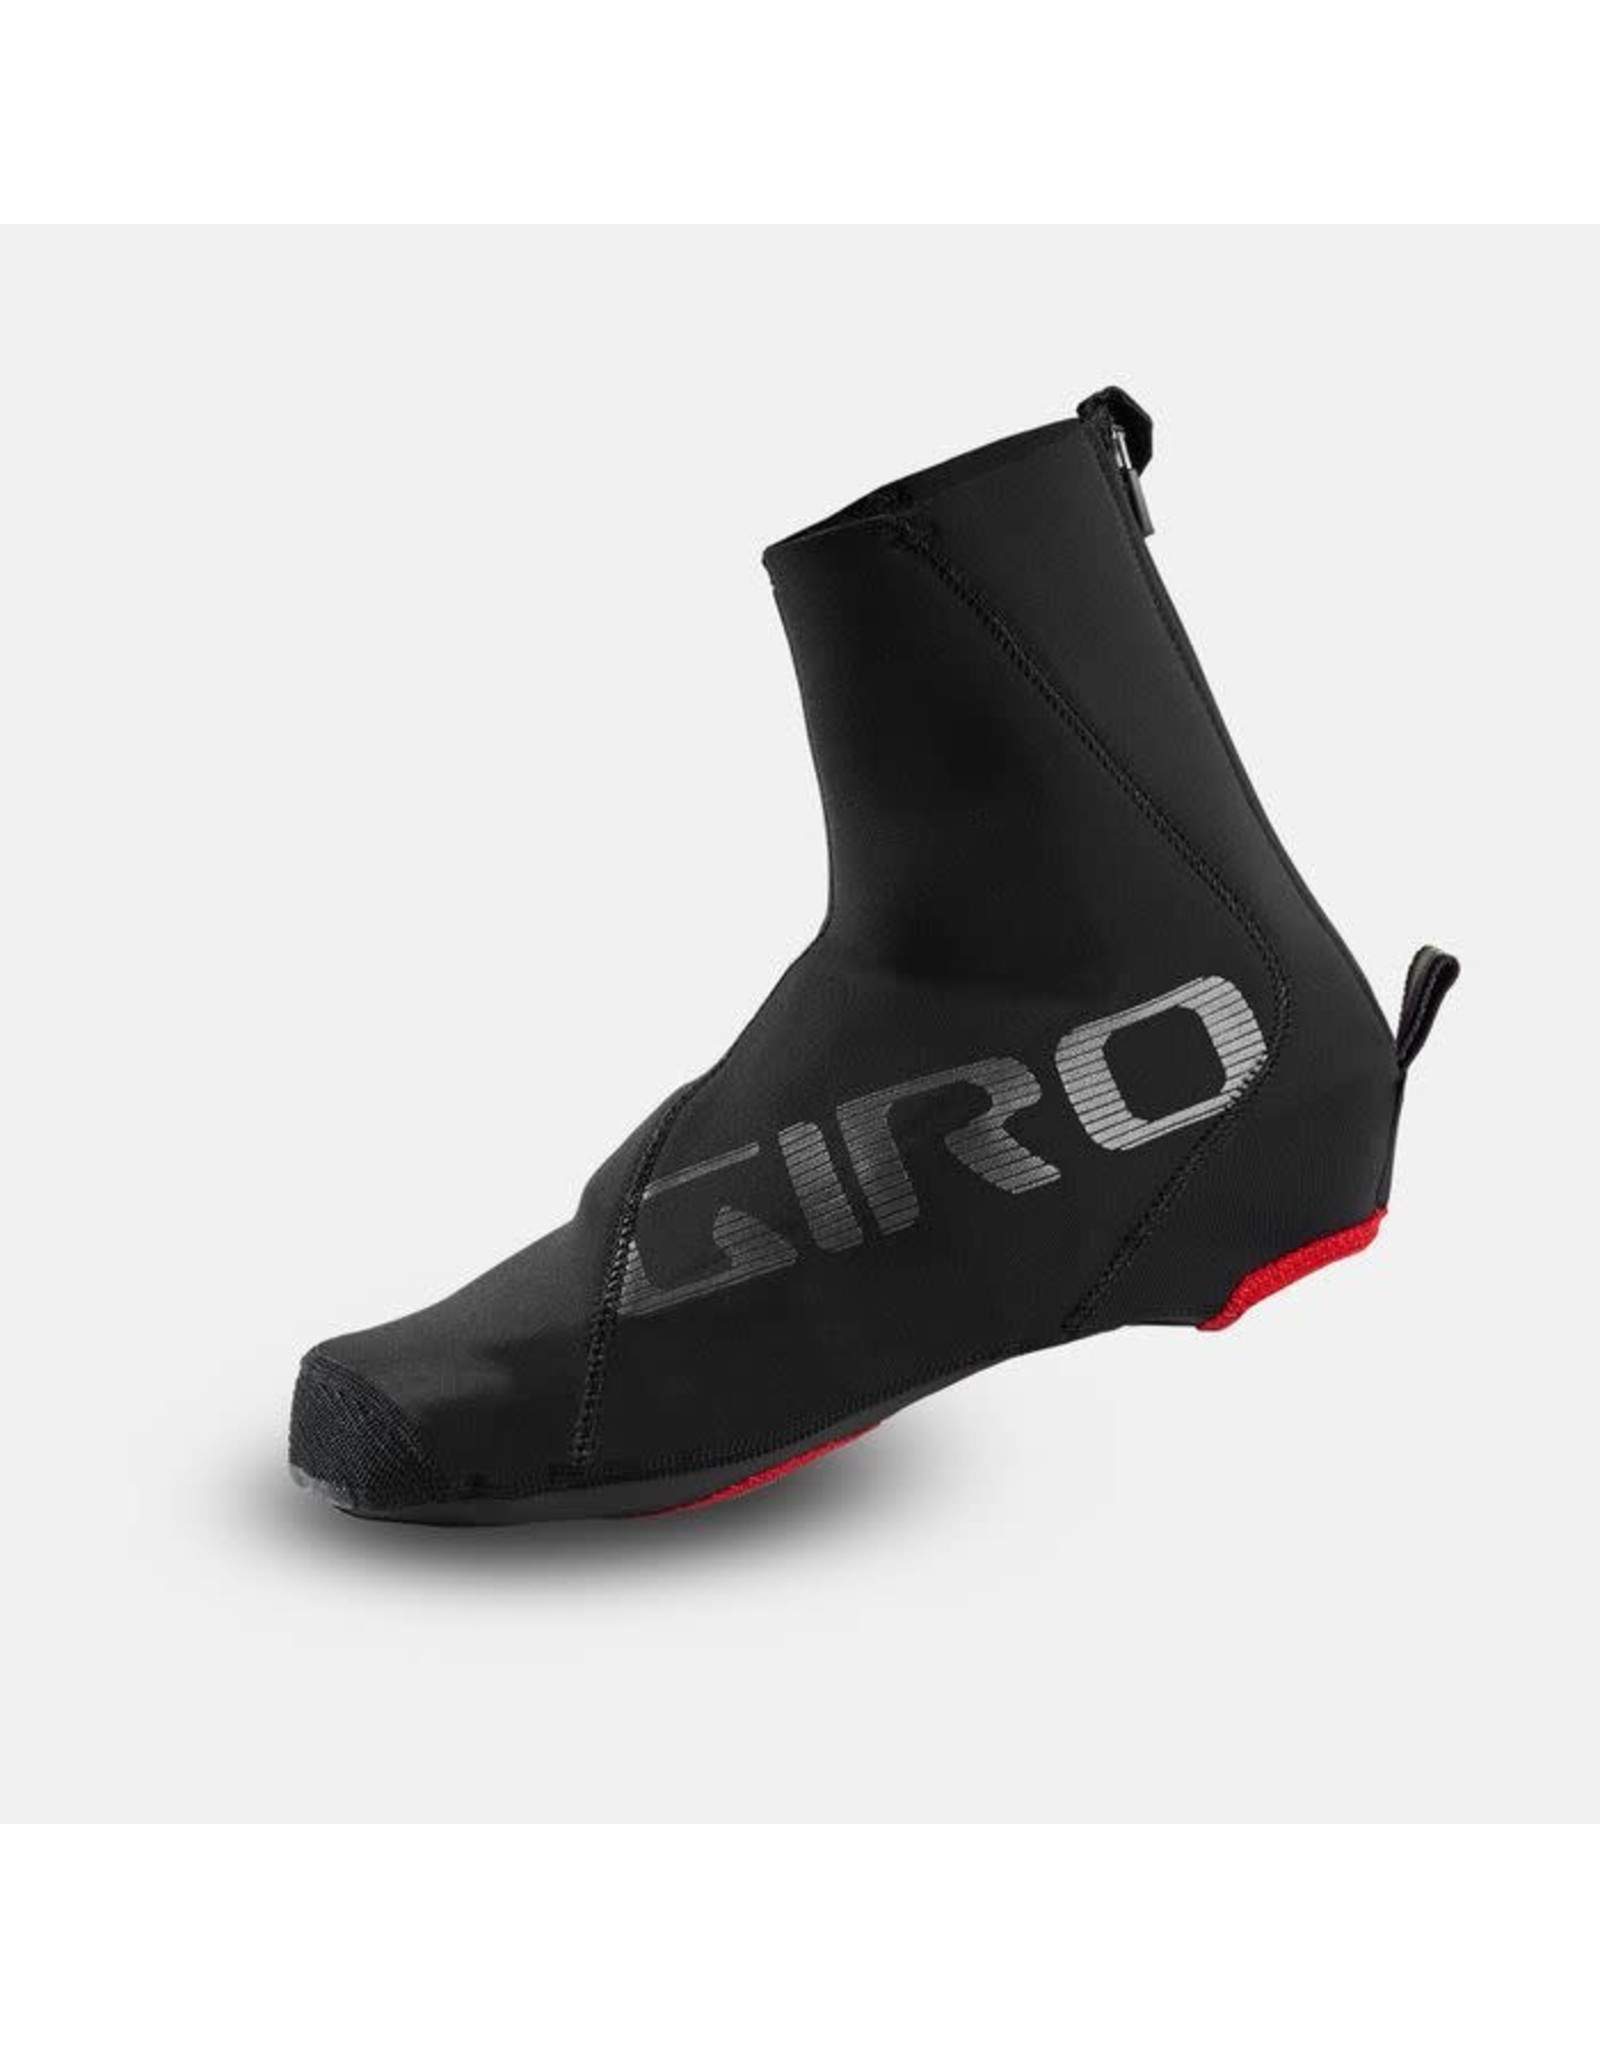 Giro Cycling Giro Cycling Proof Winter MTB Shoe Cover